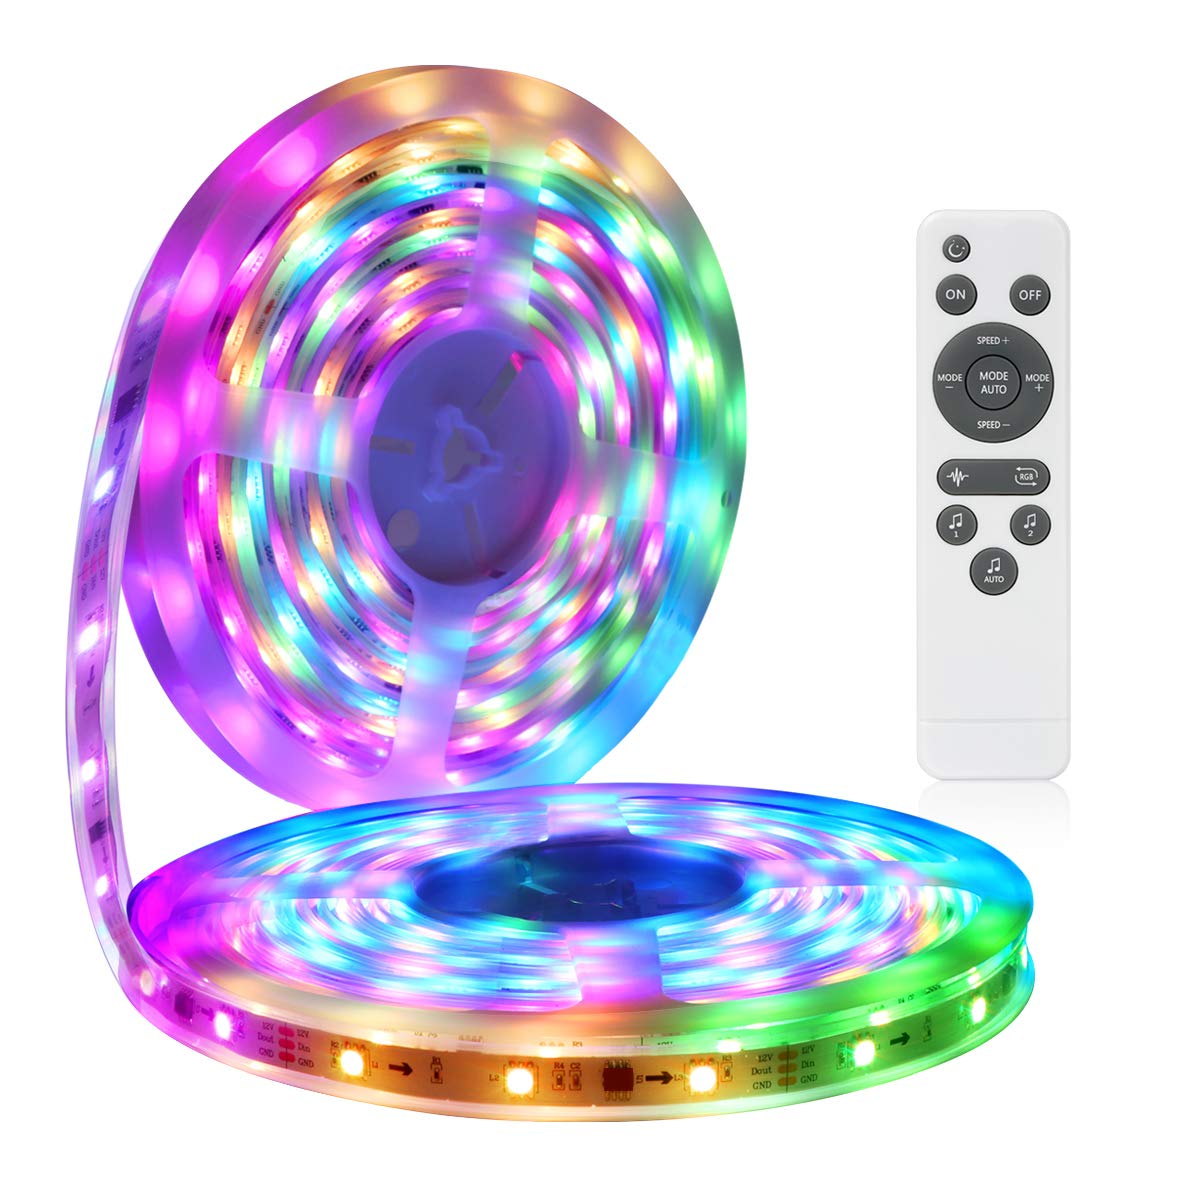 LED Strip Lights More Than 80 Kinds of Modes Music Activated Rainbow Lights 32.8ft 10m IP65 Waterproof LED Light Strip 5050 RGB LED Strip with RF Controller by DotStone